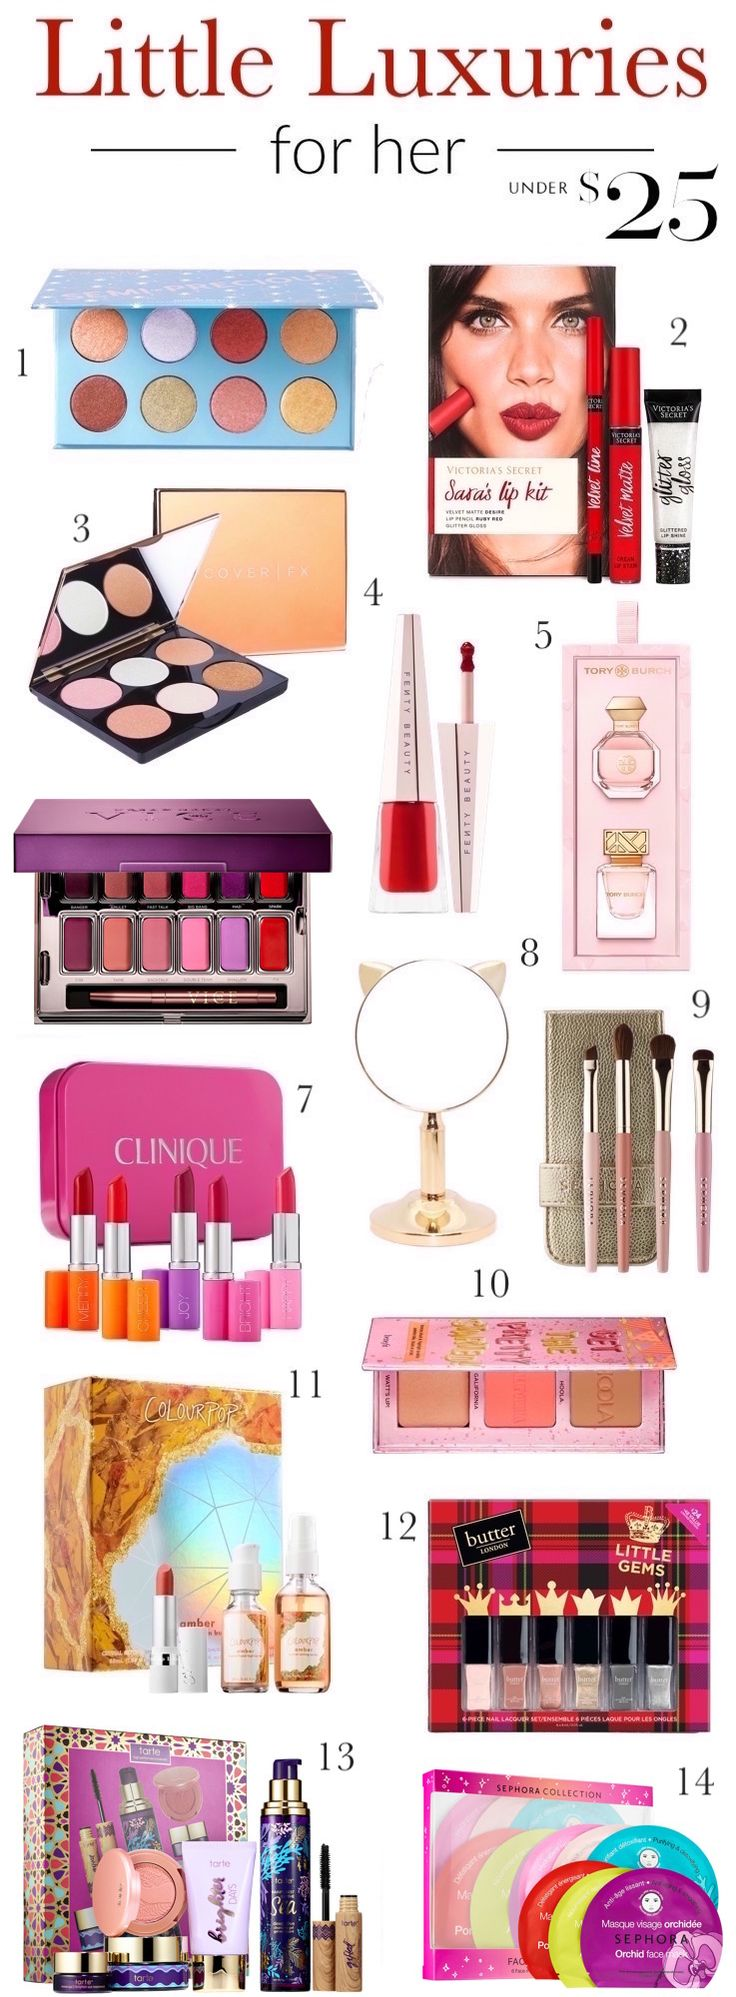 Holiday beauty and makeup gift ideas for friends   Whether you are shopping for your favorite ladies or want to spoil yourself, these beauty gifts under $25 are sure to impress the beauty obsessed!